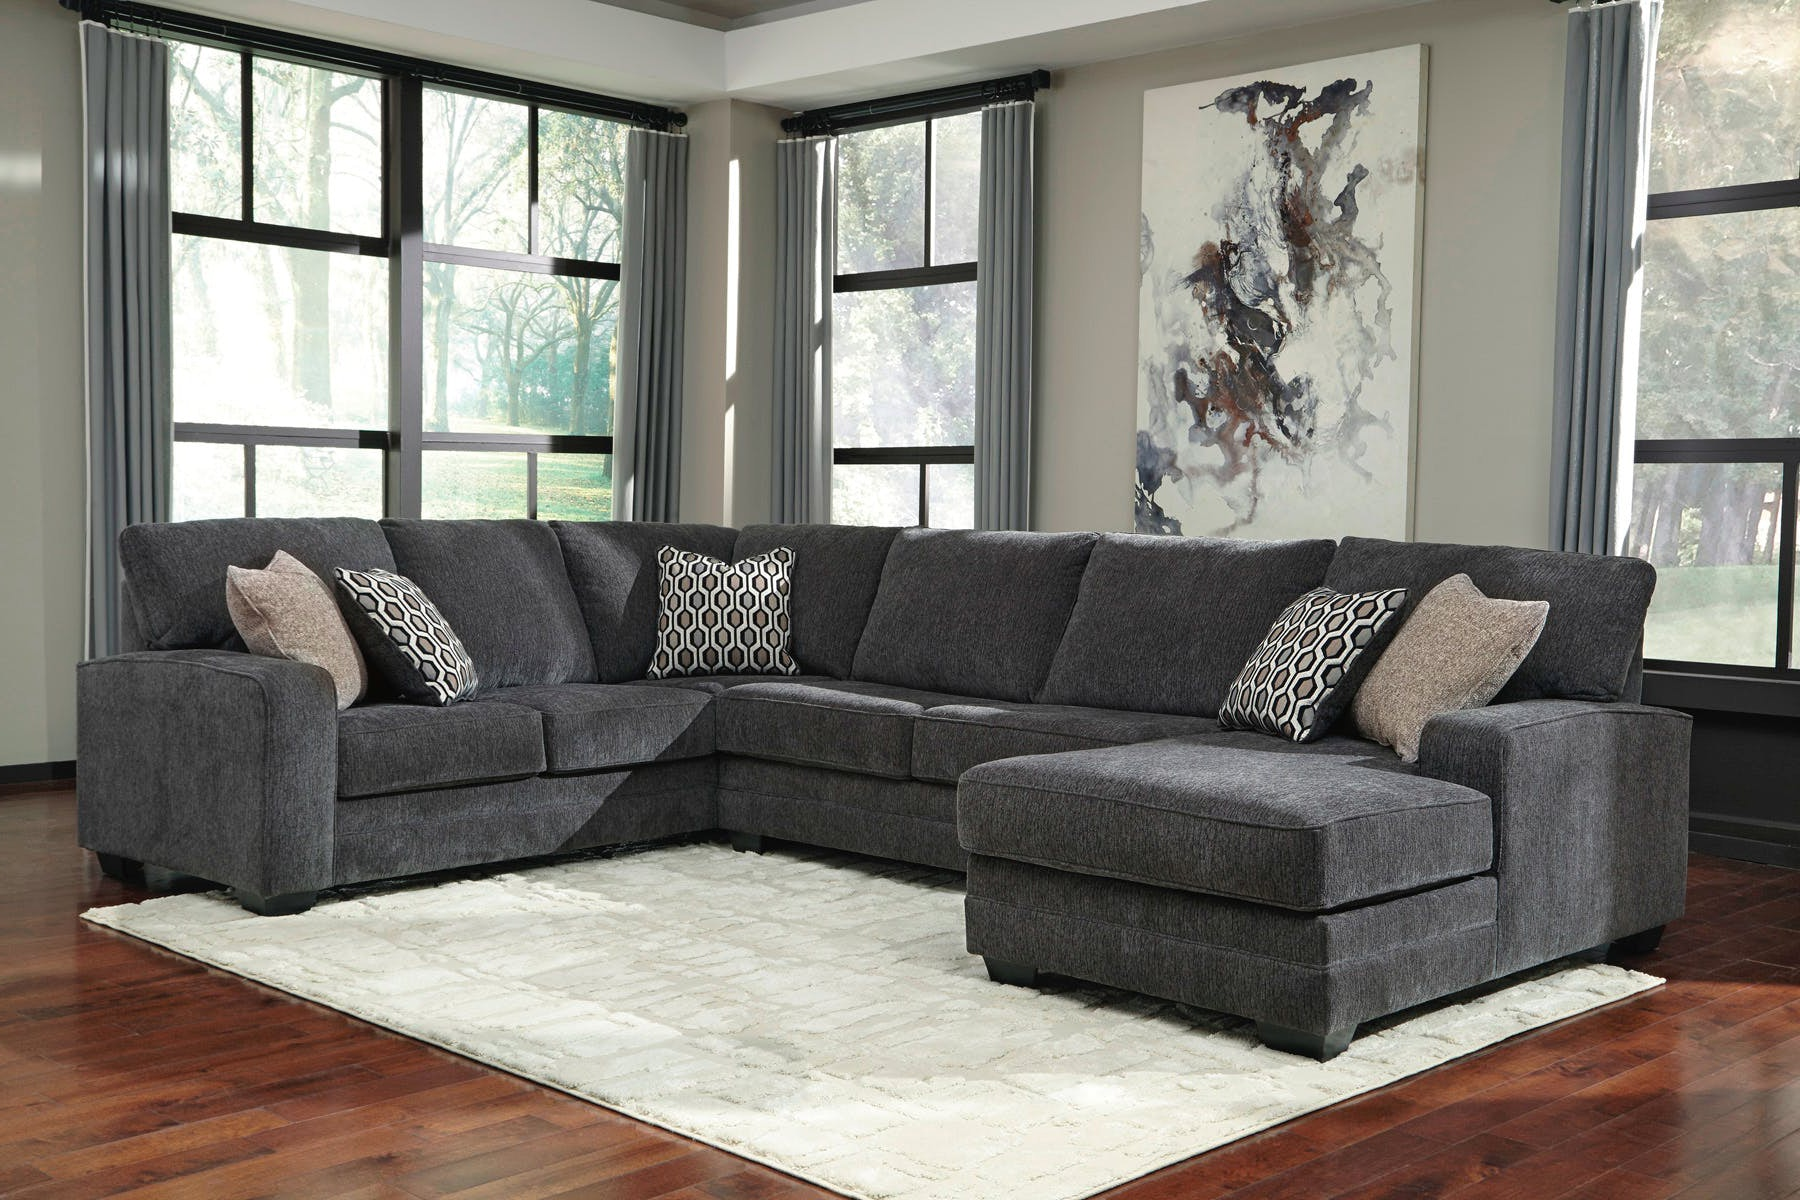 number hogan mocha signature with chaise products motion design item by piece sectional ashley